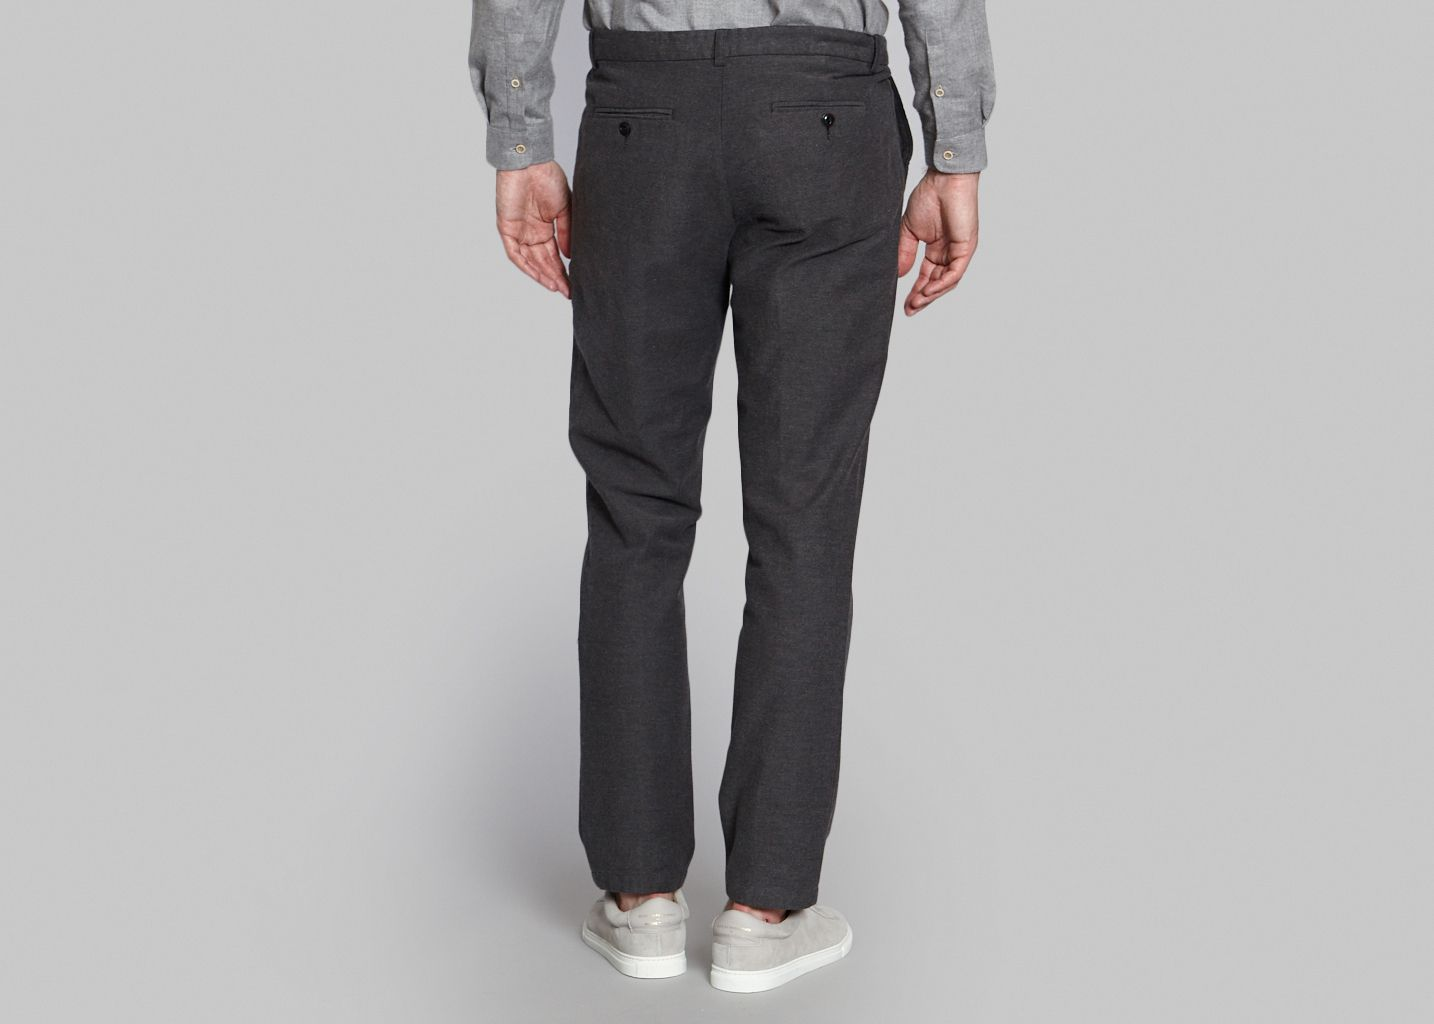 Flannel Trousers - JagVi